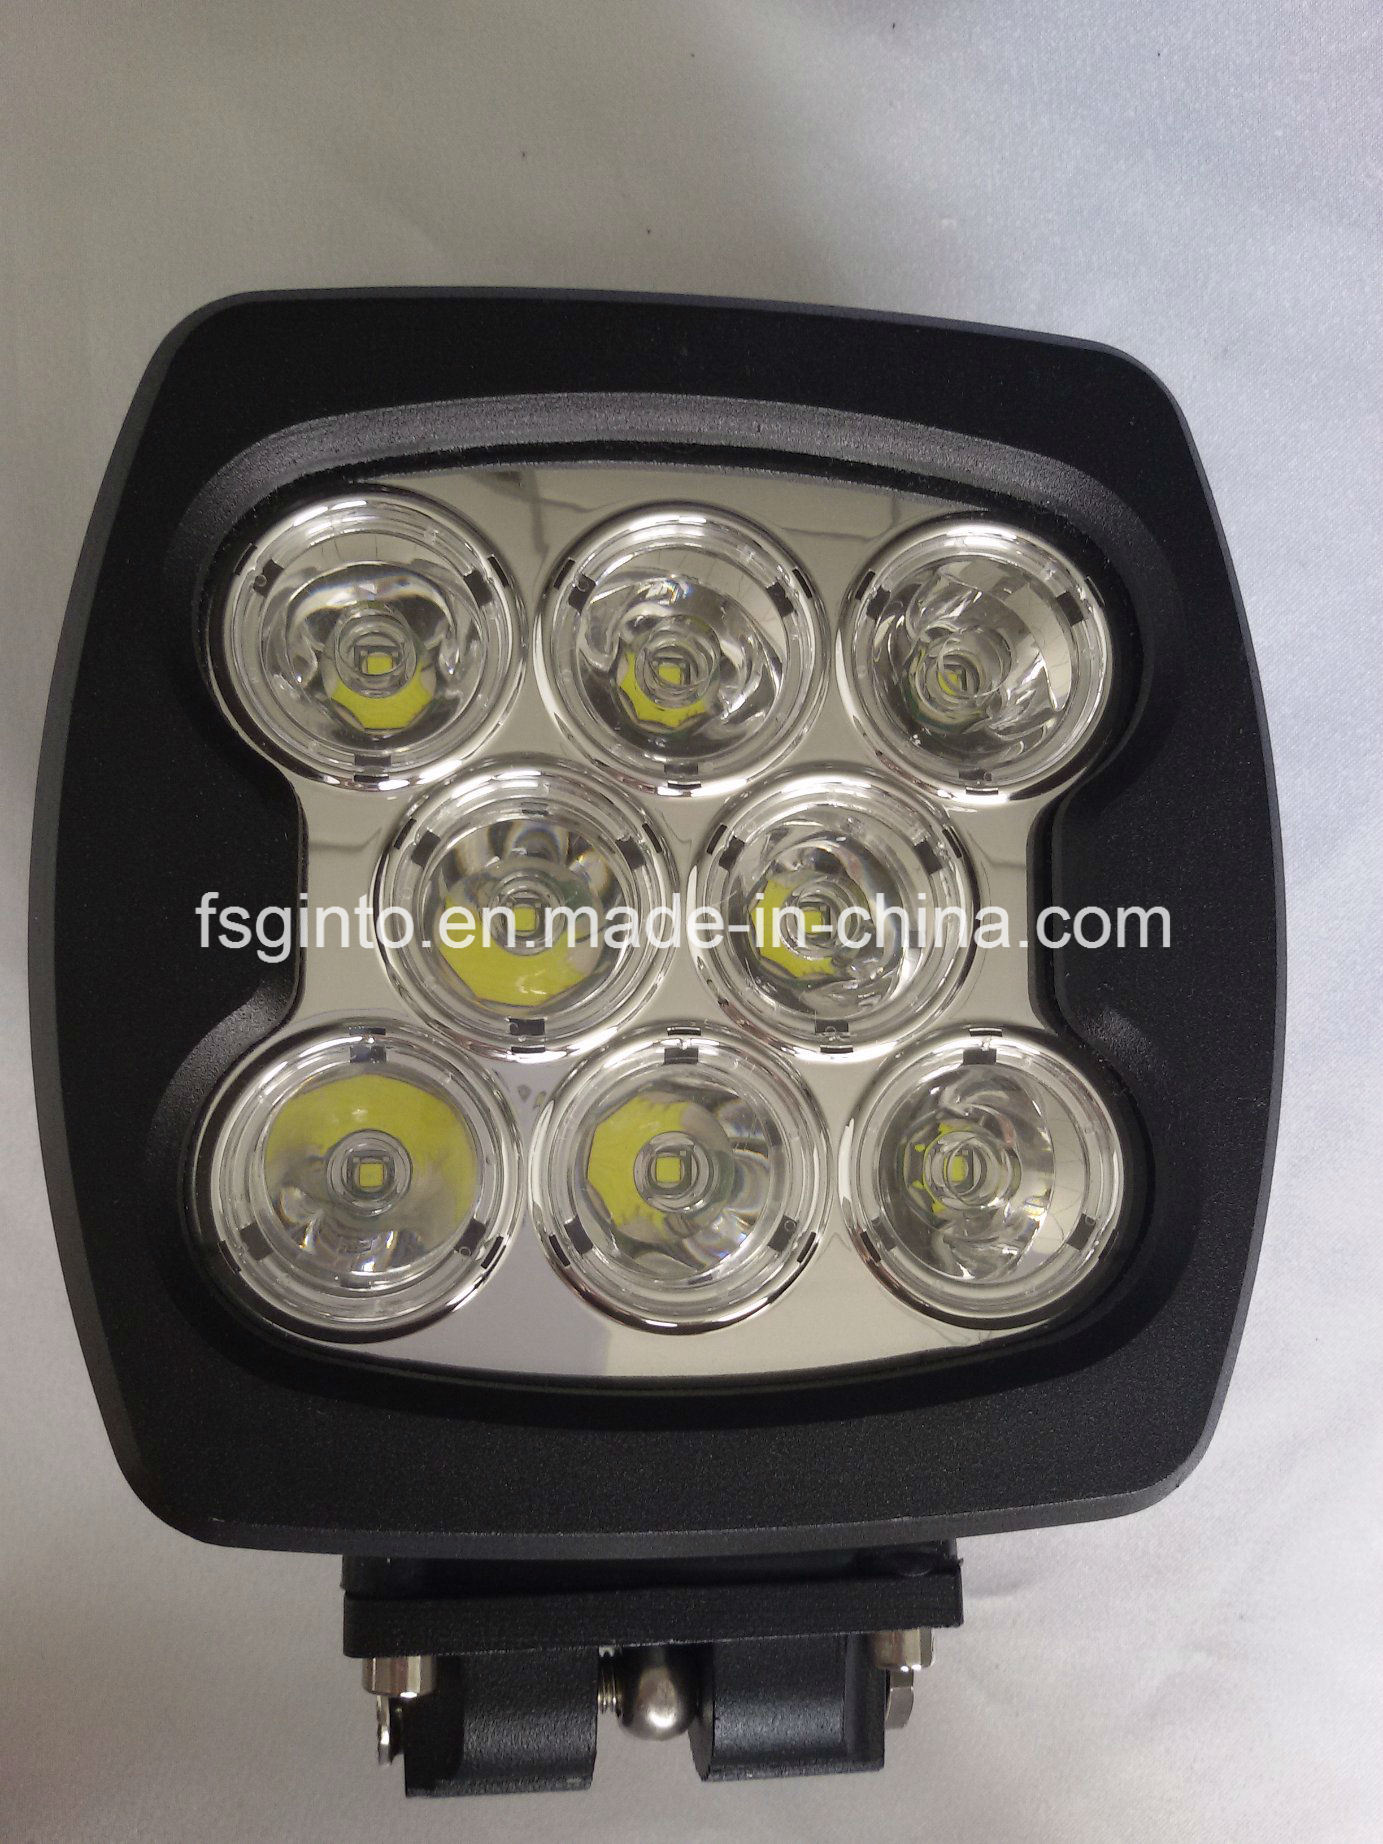 80W 5.5inch CREE LED Work Light for Heavy Equipment (GT1025-80W)